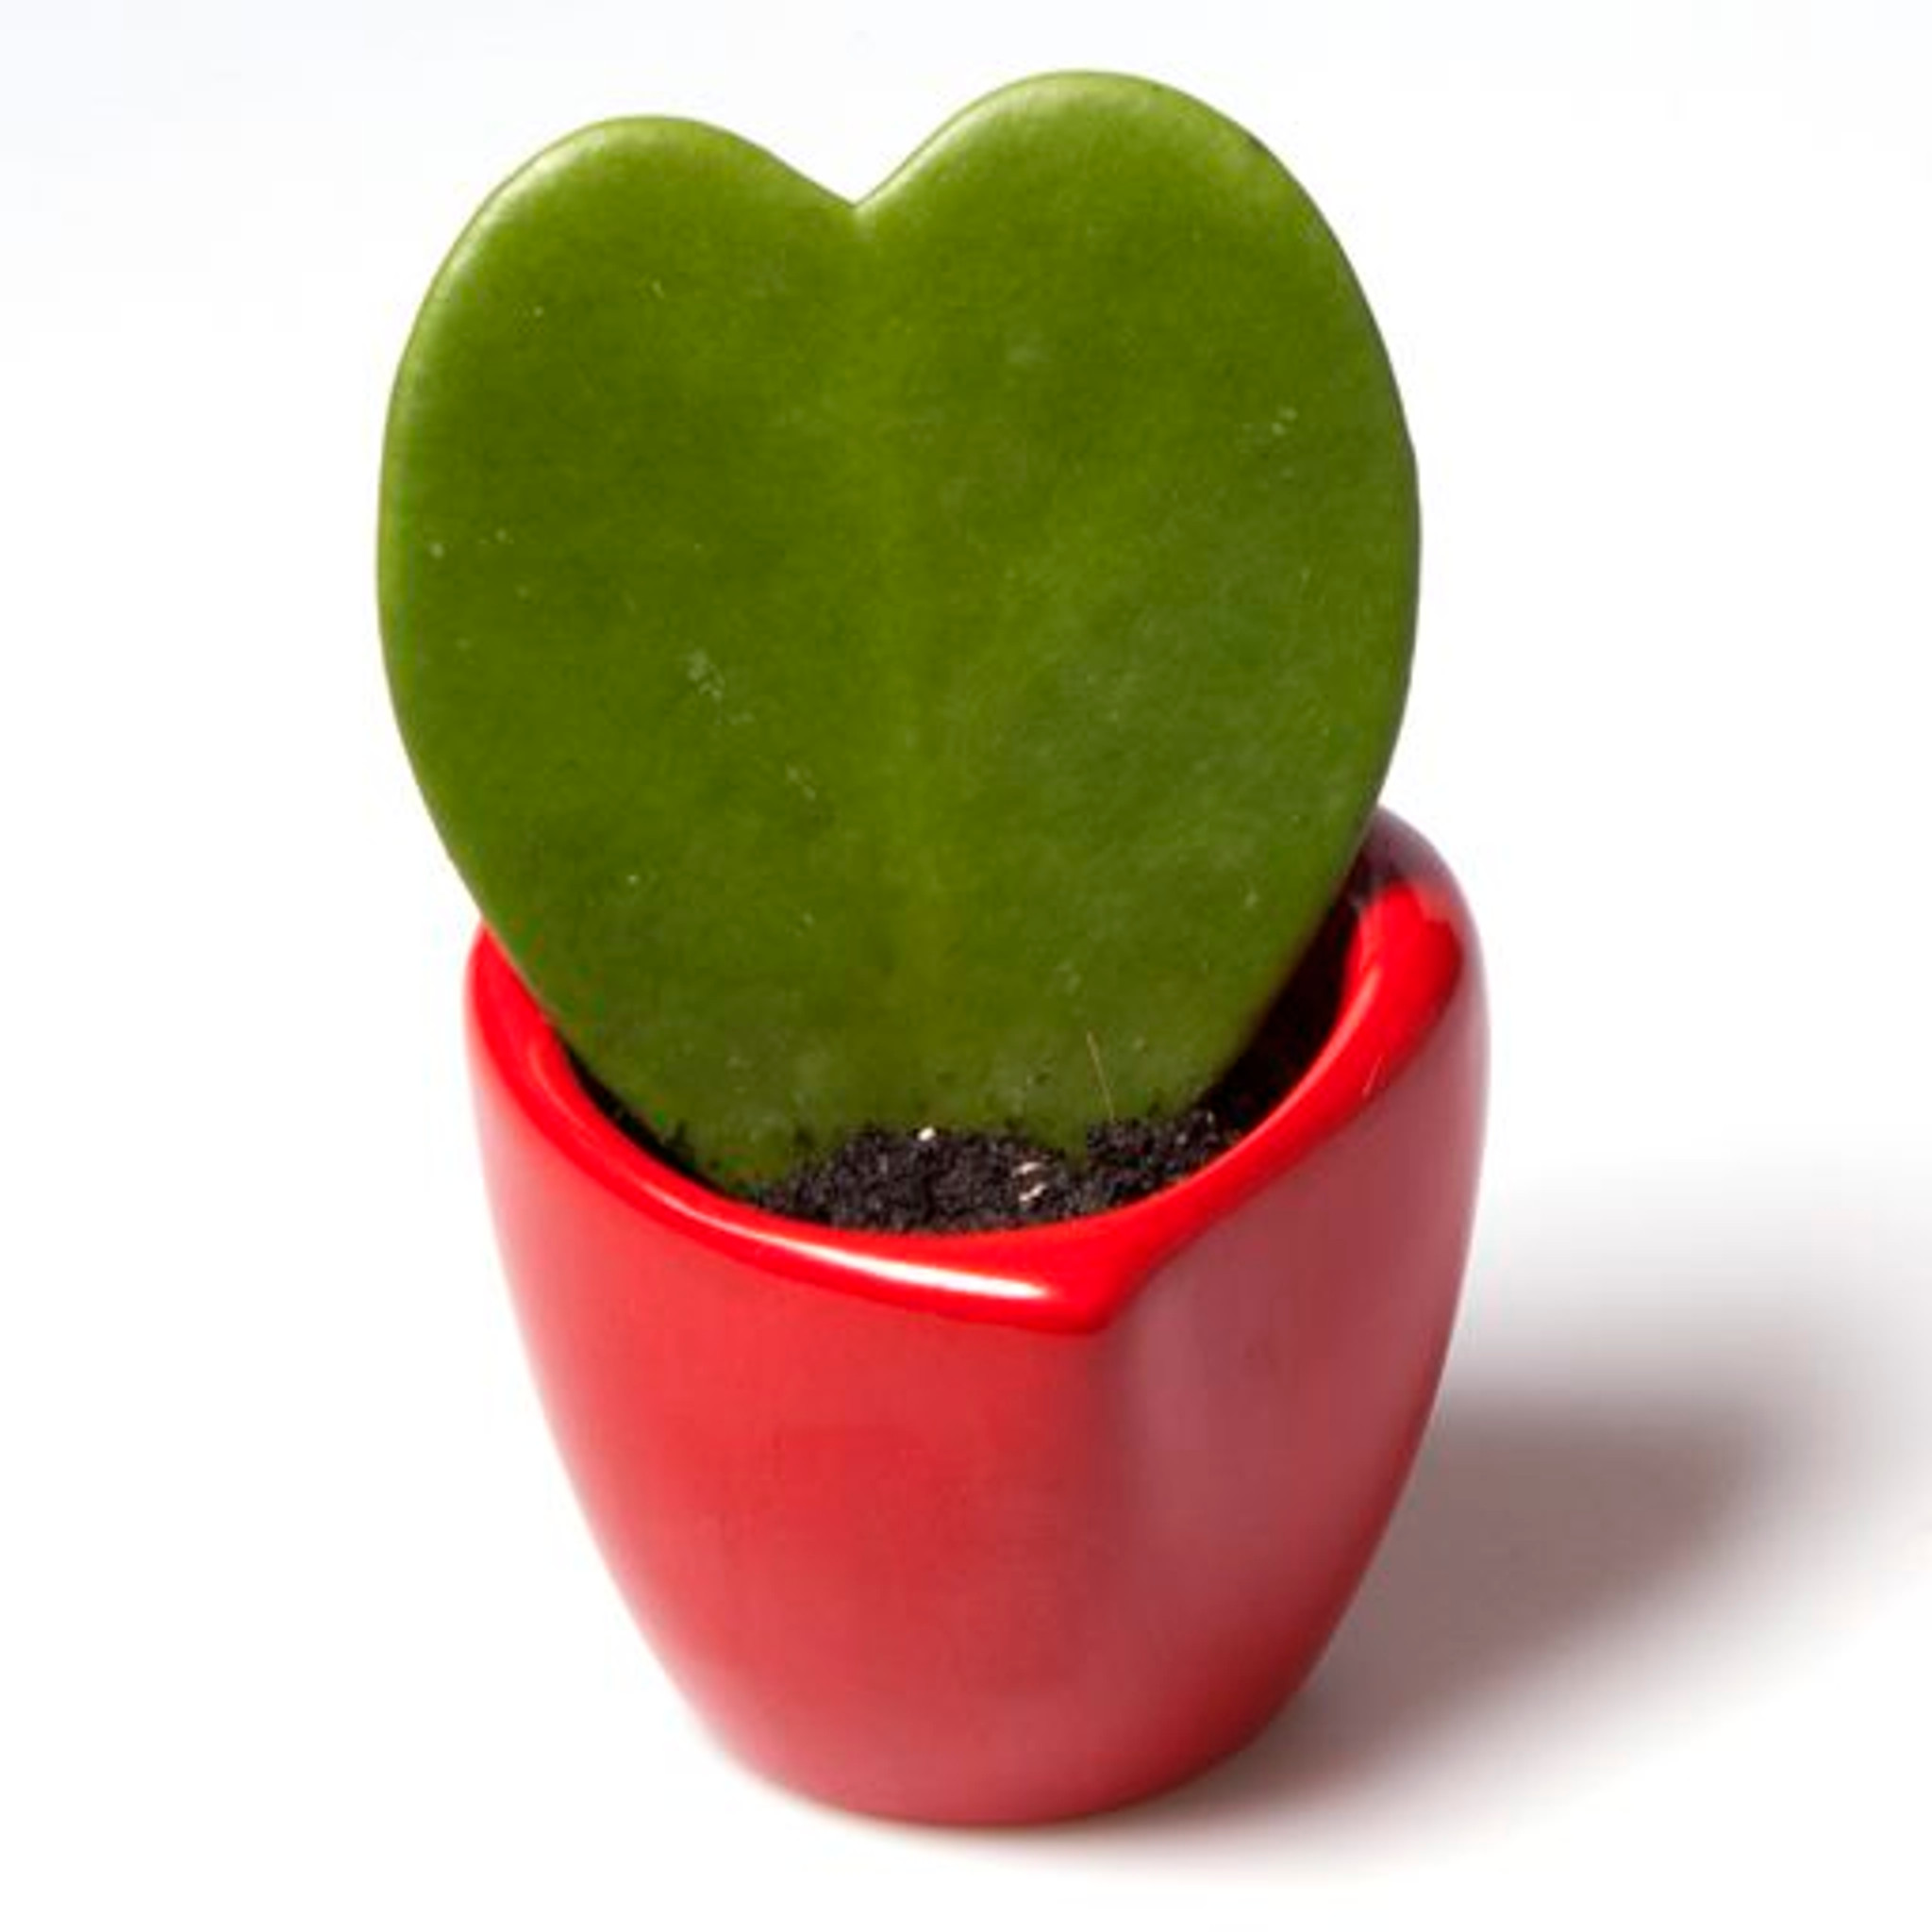 Hoya Kerrii Lucky Heart - Lovely Sweetheart Plant in Ceramic Heart Shaped Red Pot - Stylish Addition to any Home or Special present for a Loved One